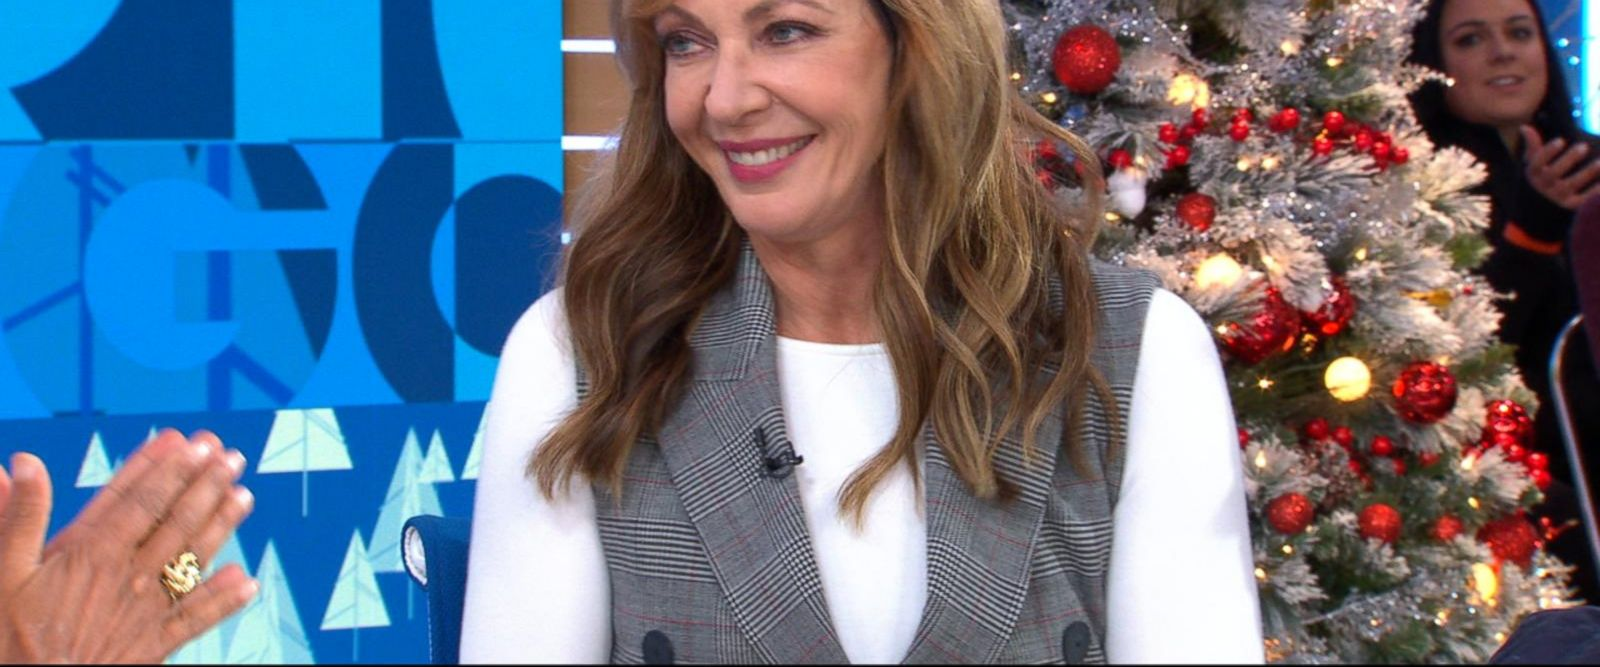 VIDEO: Allison Janney opens up about 'I, Tonya'